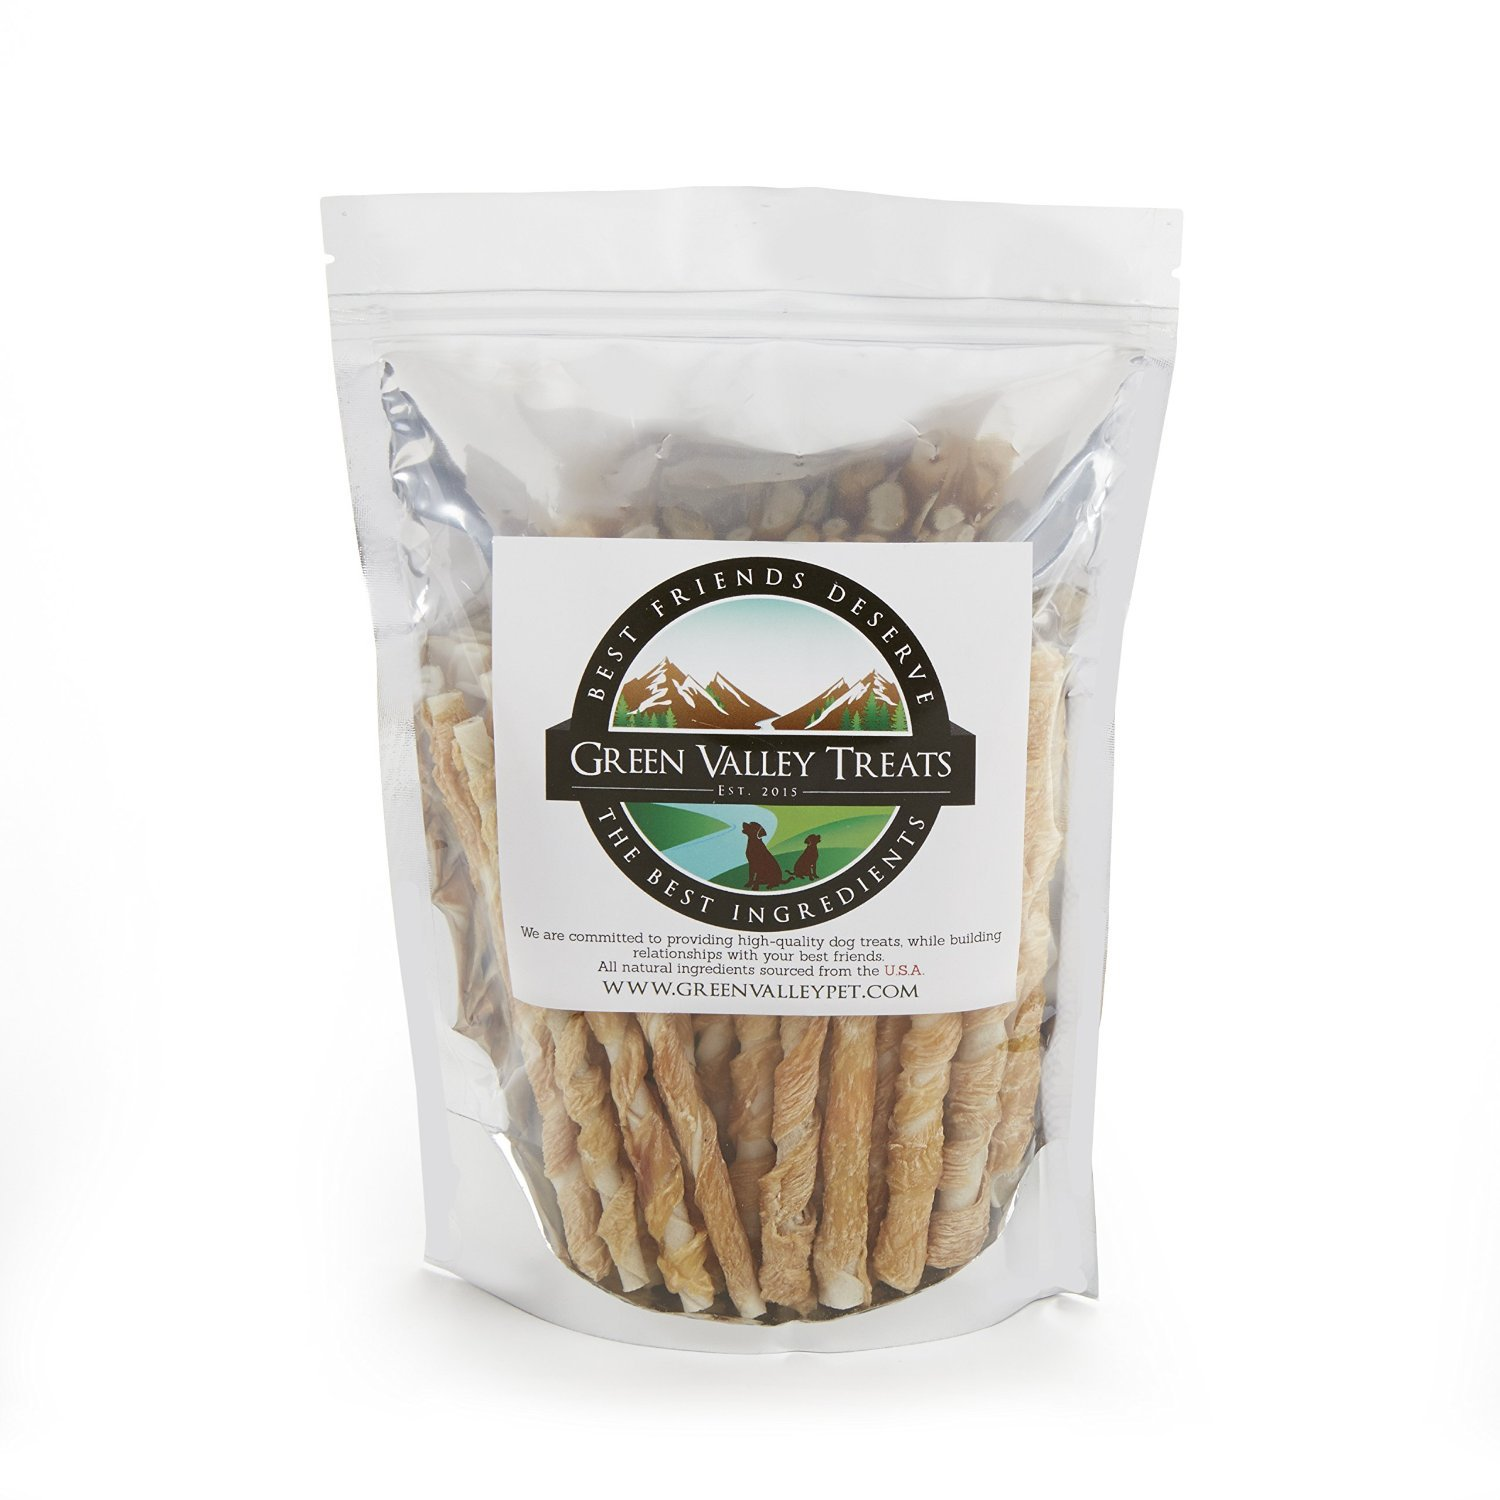 Green Valley Treats Rawhide Chews with Real Chicken, Made in The USA Only, Natural Gluten Free Dog Treats for Small Dogs, Perfect Dog Training Treats